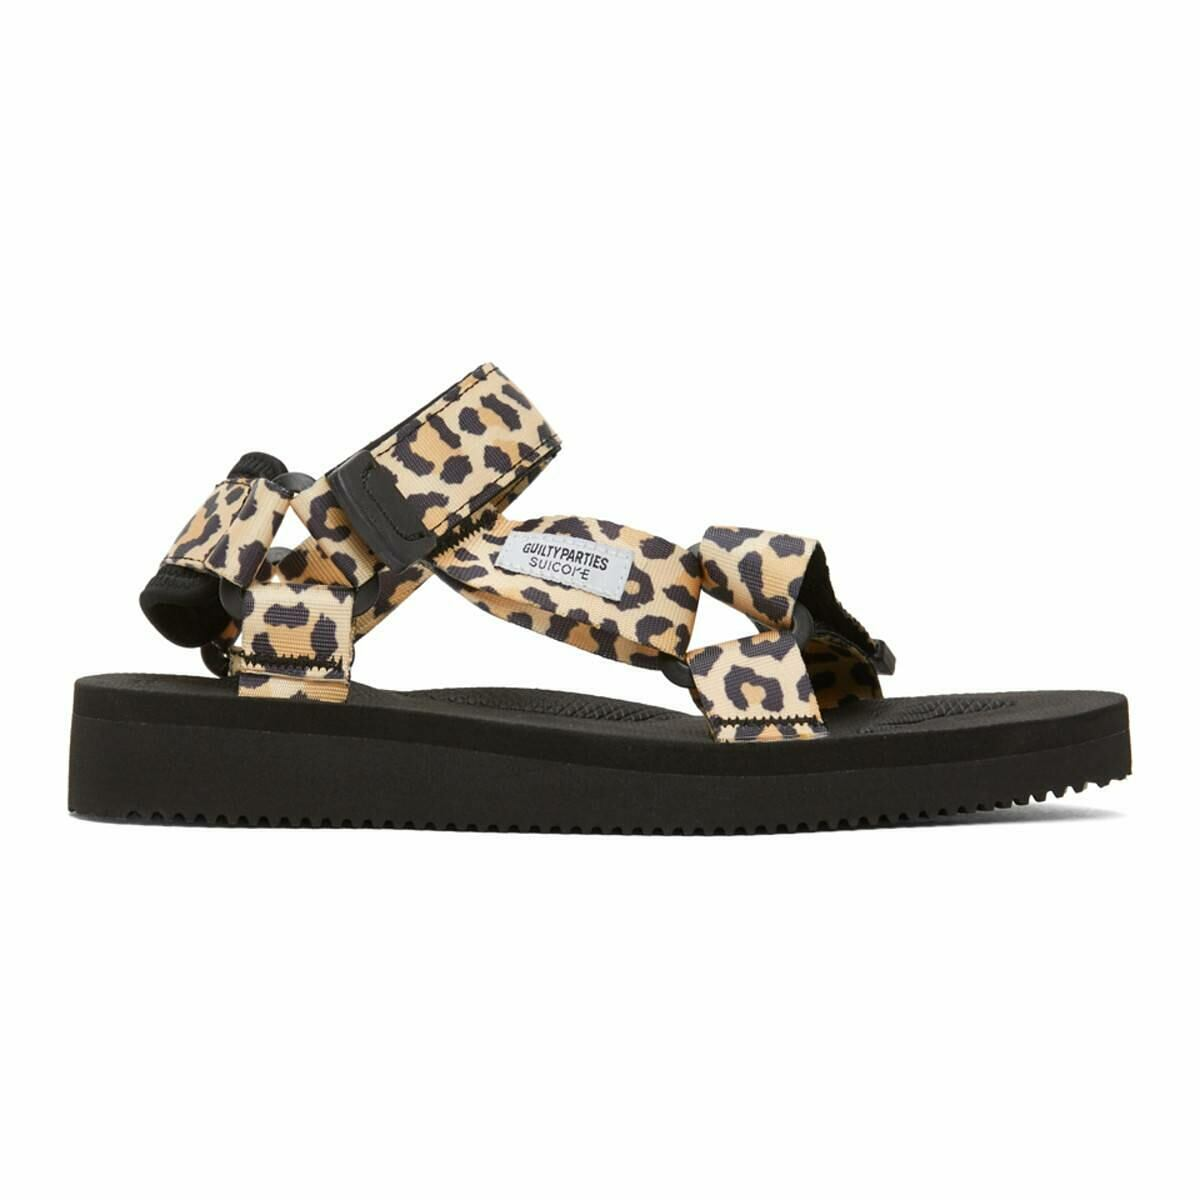 WACKO MARIA Beige and Black Suicoke Edition Leopard Beach Sandals Ssense USA MEN Men SHOES Mens SANDALS